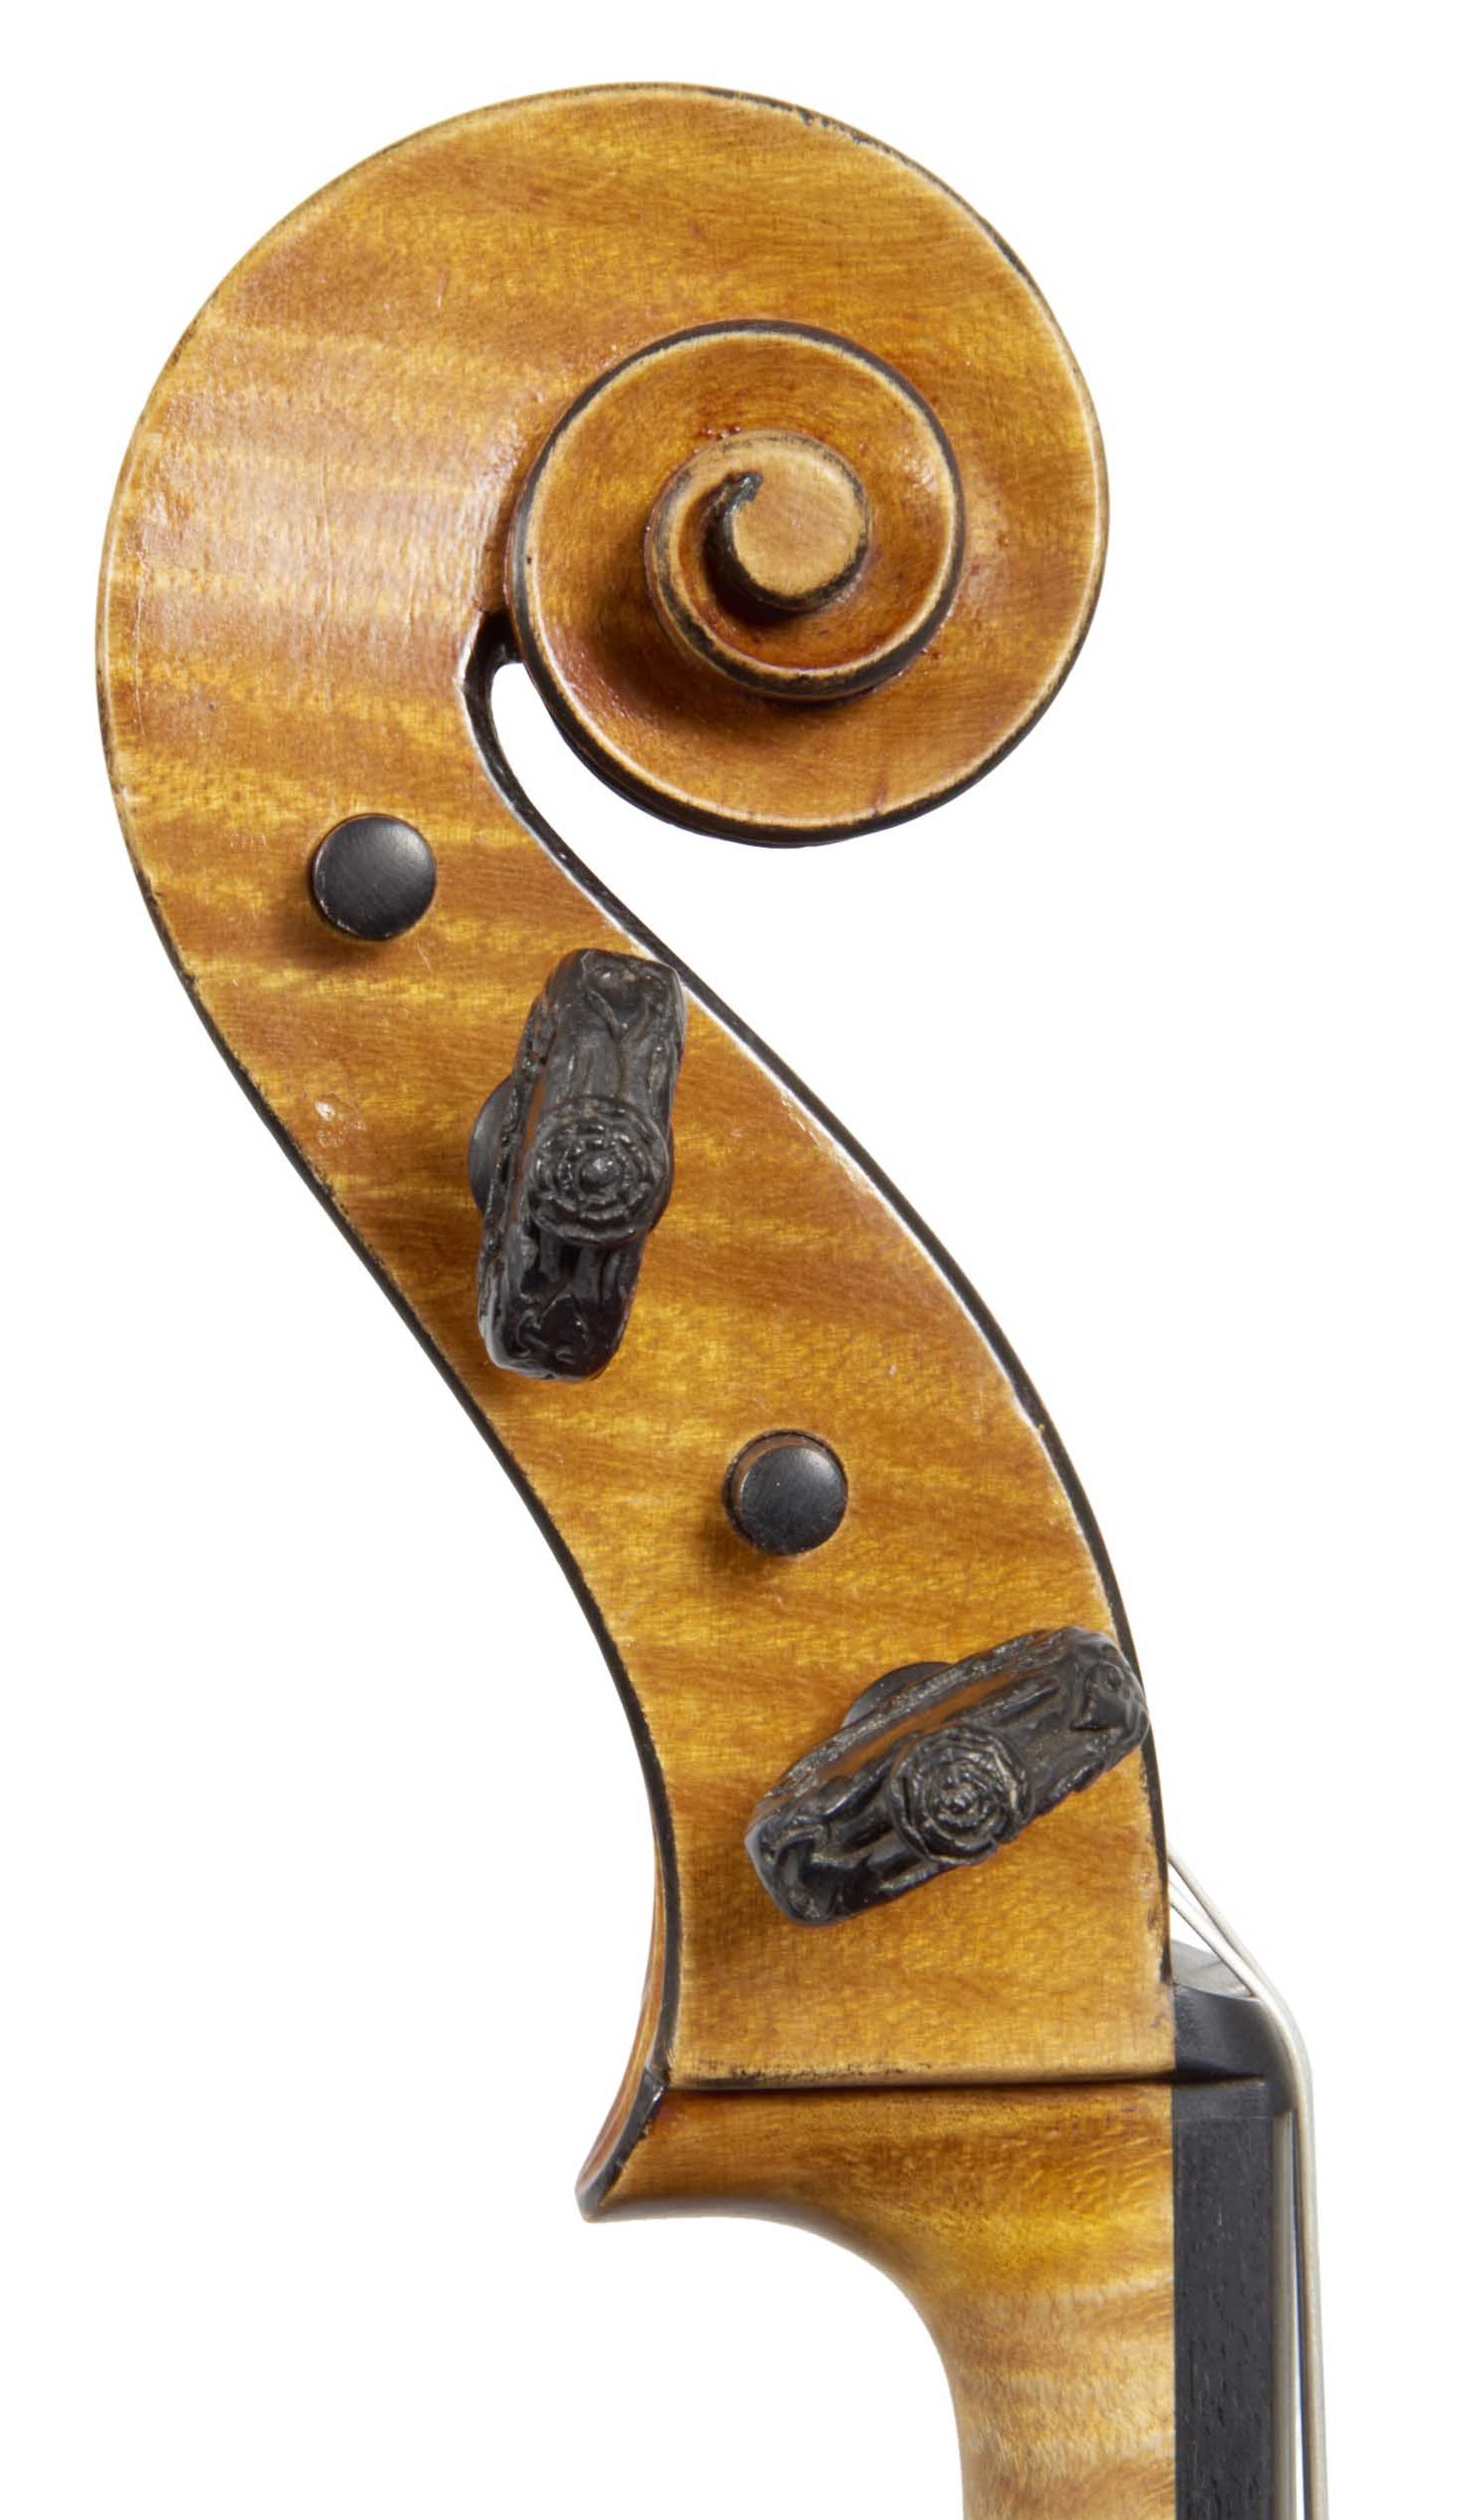 Scroll of St. Mathieu viola from the Evangelists quartet by JB Vuillaume, dated 1863